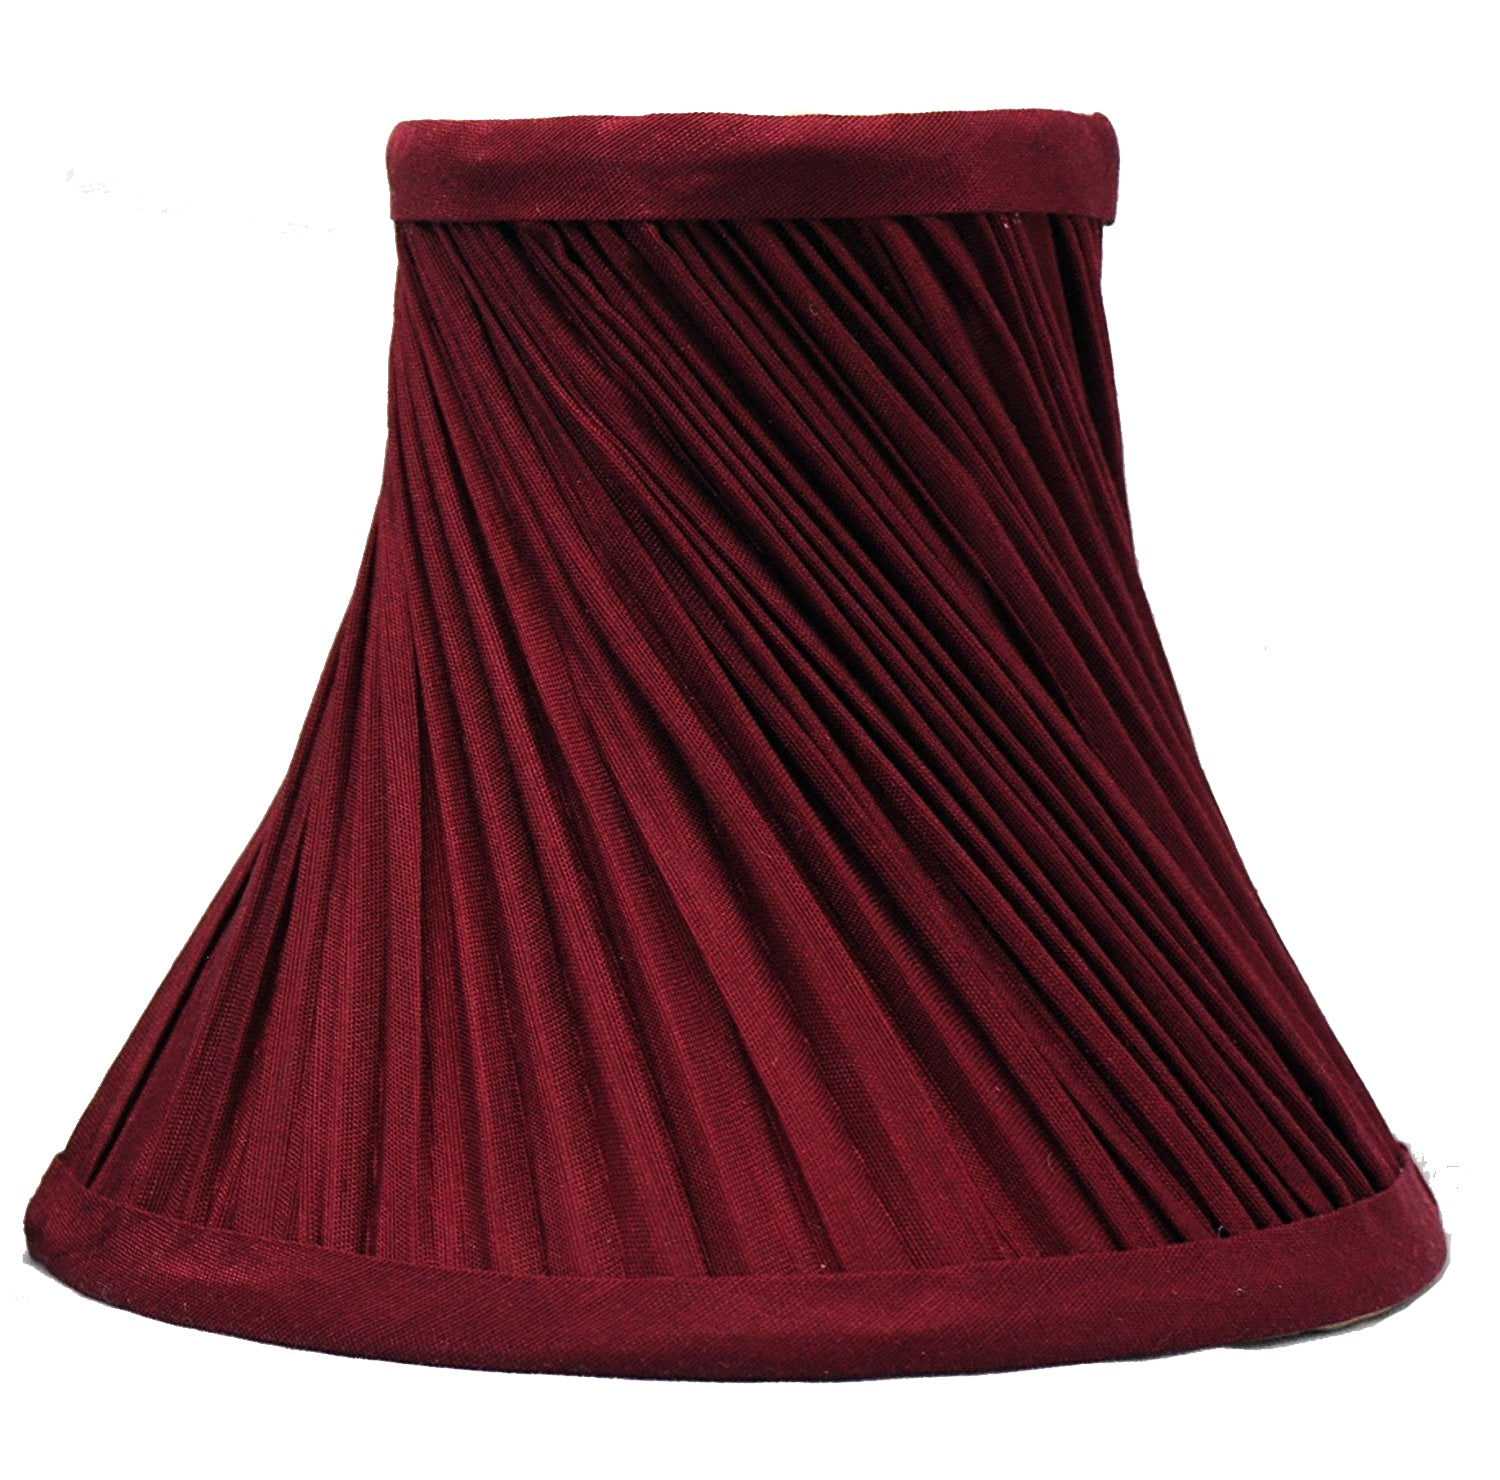 6 inch chandelier shades urbanest swirl pleated 6 inch chandelier lamp shades 4 colors arubaitofo Gallery